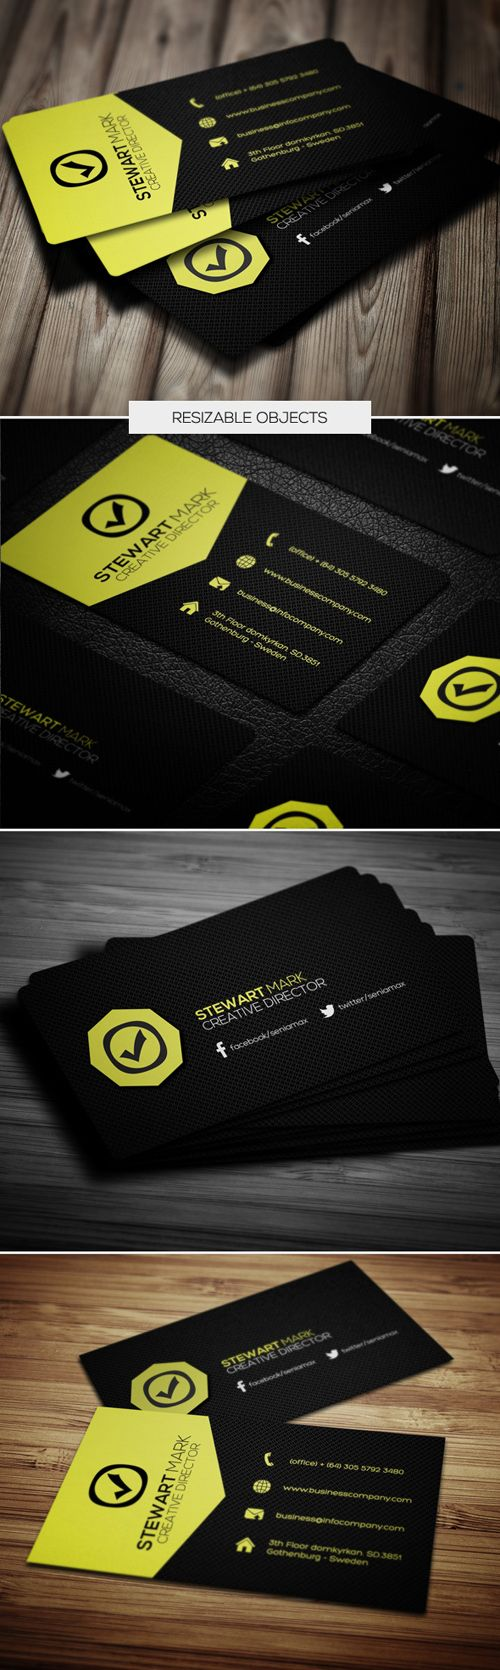 135 best cool business card idea images on pinterest business card buy creative business card 056 by msadesign on graphicriver a great business card template for your business company this card template is perfect for reheart Image collections